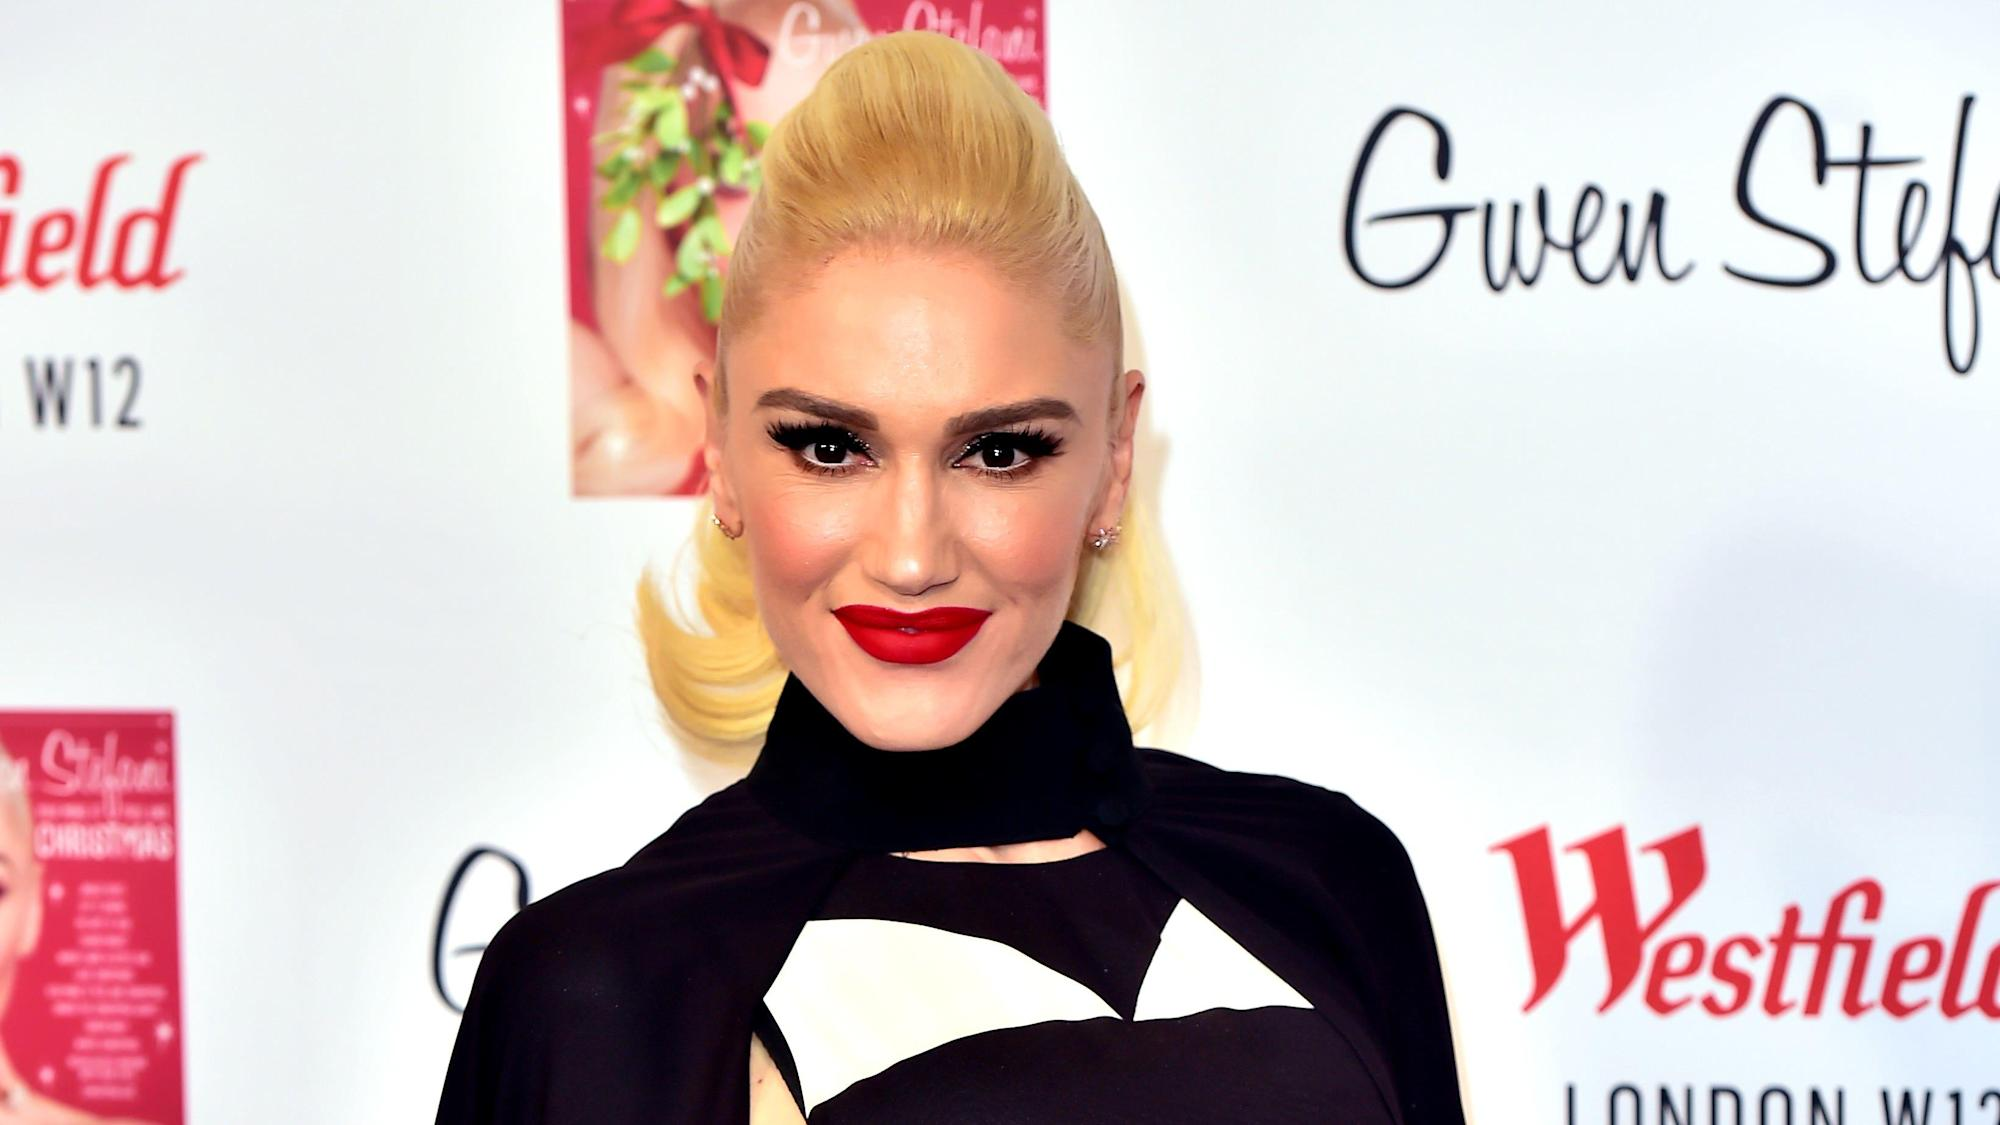 Gwen Stefani talks about the 30th anniversary of No Doubt